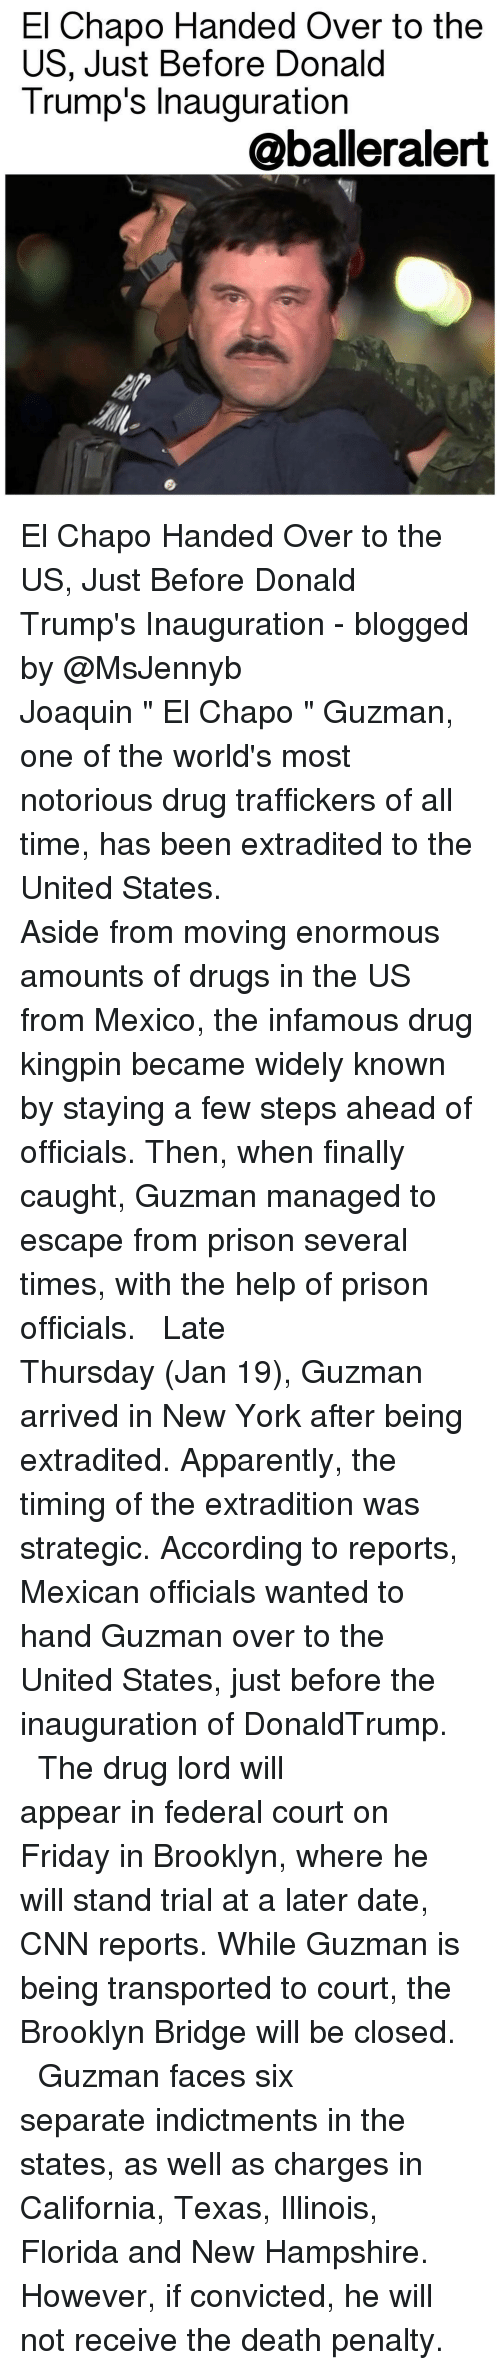 "Chapo Guzman: El Chapo Handed Over to the  US, Just Before Donald  Trump's Inauguration  aballeralert El Chapo Handed Over to the US, Just Before Donald Trump's Inauguration - blogged by @MsJennyb ⠀⠀⠀⠀⠀⠀⠀⠀⠀ ⠀⠀⠀⠀⠀⠀⠀⠀⠀ Joaquin "" El Chapo "" Guzman, one of the world's most notorious drug traffickers of all time, has been extradited to the United States. ⠀⠀⠀⠀⠀⠀⠀⠀⠀ ⠀⠀⠀⠀⠀⠀⠀⠀⠀ Aside from moving enormous amounts of drugs in the US from Mexico, the infamous drug kingpin became widely known by staying a few steps ahead of officials. Then, when finally caught, Guzman managed to escape from prison several times, with the help of prison officials. ⠀⠀⠀⠀⠀⠀⠀⠀⠀ ⠀⠀⠀⠀⠀⠀⠀⠀⠀ Late Thursday (Jan 19), Guzman arrived in New York after being extradited. Apparently, the timing of the extradition was strategic. According to reports, Mexican officials wanted to hand Guzman over to the United States, just before the inauguration of DonaldTrump. ⠀⠀⠀⠀⠀⠀⠀⠀⠀ ⠀⠀⠀⠀⠀⠀⠀⠀⠀ The drug lord will appear in federal court on Friday in Brooklyn, where he will stand trial at a later date, CNN reports. While Guzman is being transported to court, the Brooklyn Bridge will be closed. ⠀⠀⠀⠀⠀⠀⠀⠀⠀ ⠀⠀⠀⠀⠀⠀⠀⠀⠀ Guzman faces six separate indictments in the states, as well as charges in California, Texas, Illinois, Florida and New Hampshire. However, if convicted, he will not receive the death penalty."